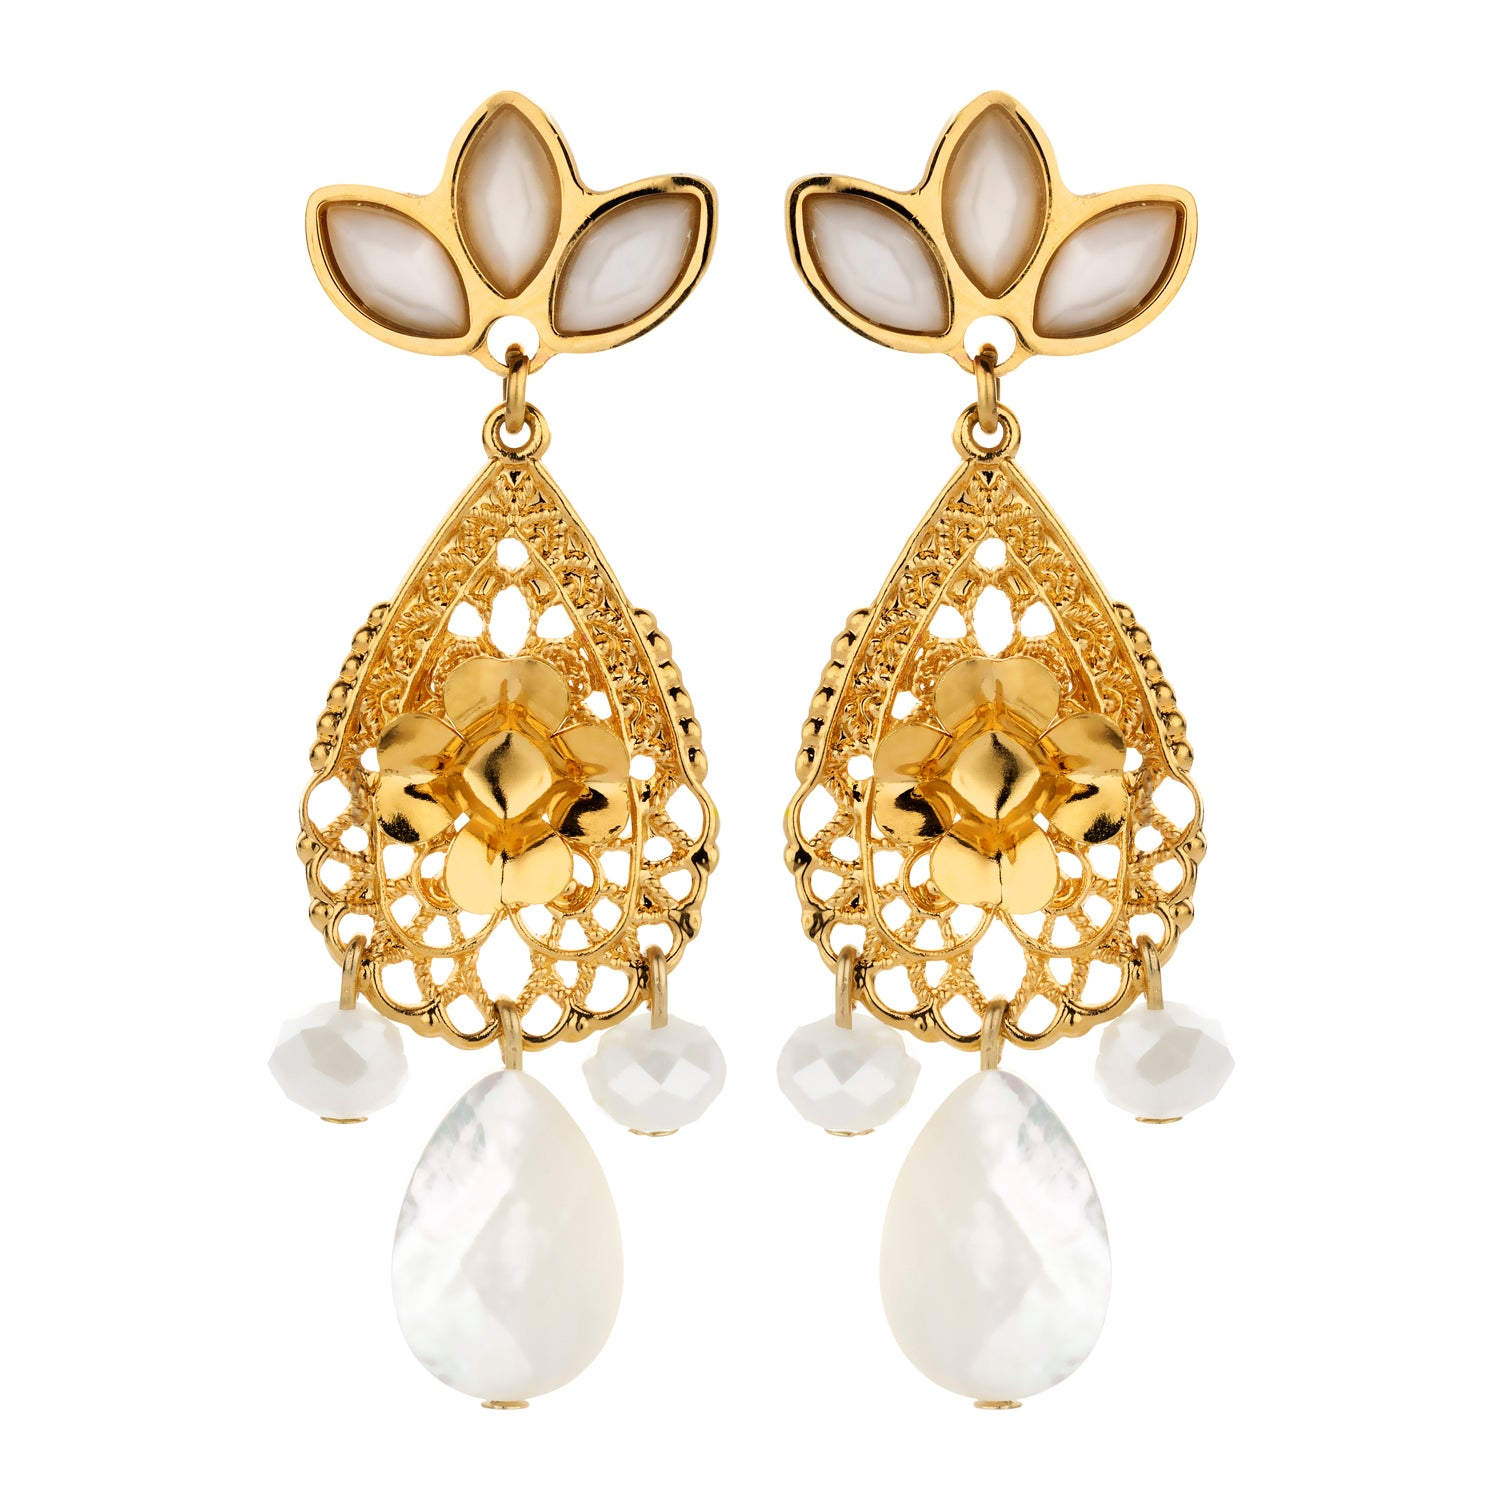 Bridal earring navettes gold